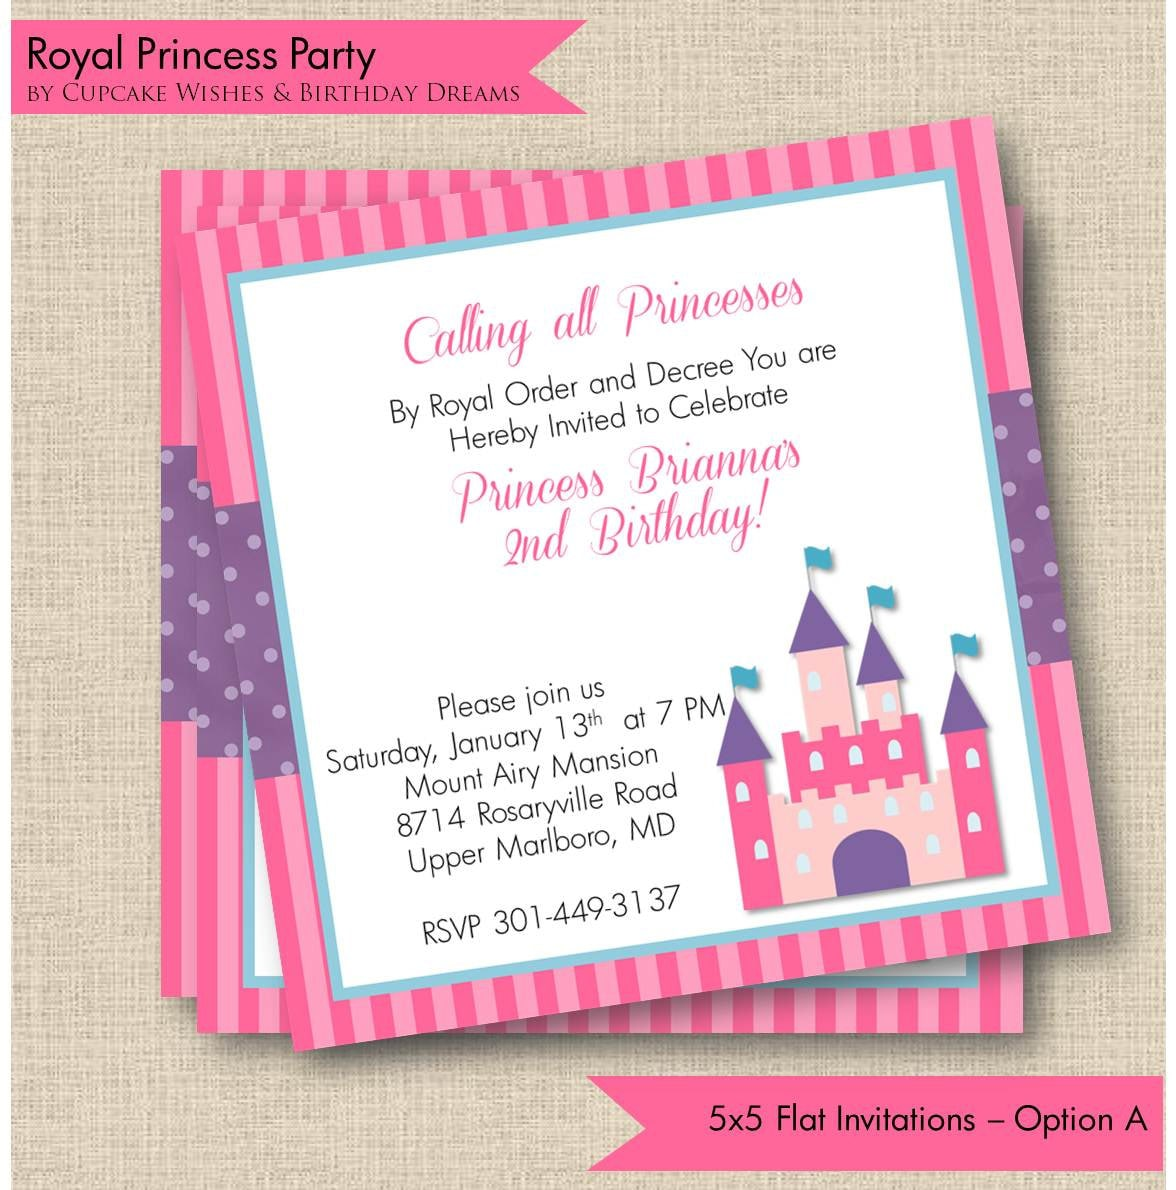 Royal Princess Printable Party Invitations